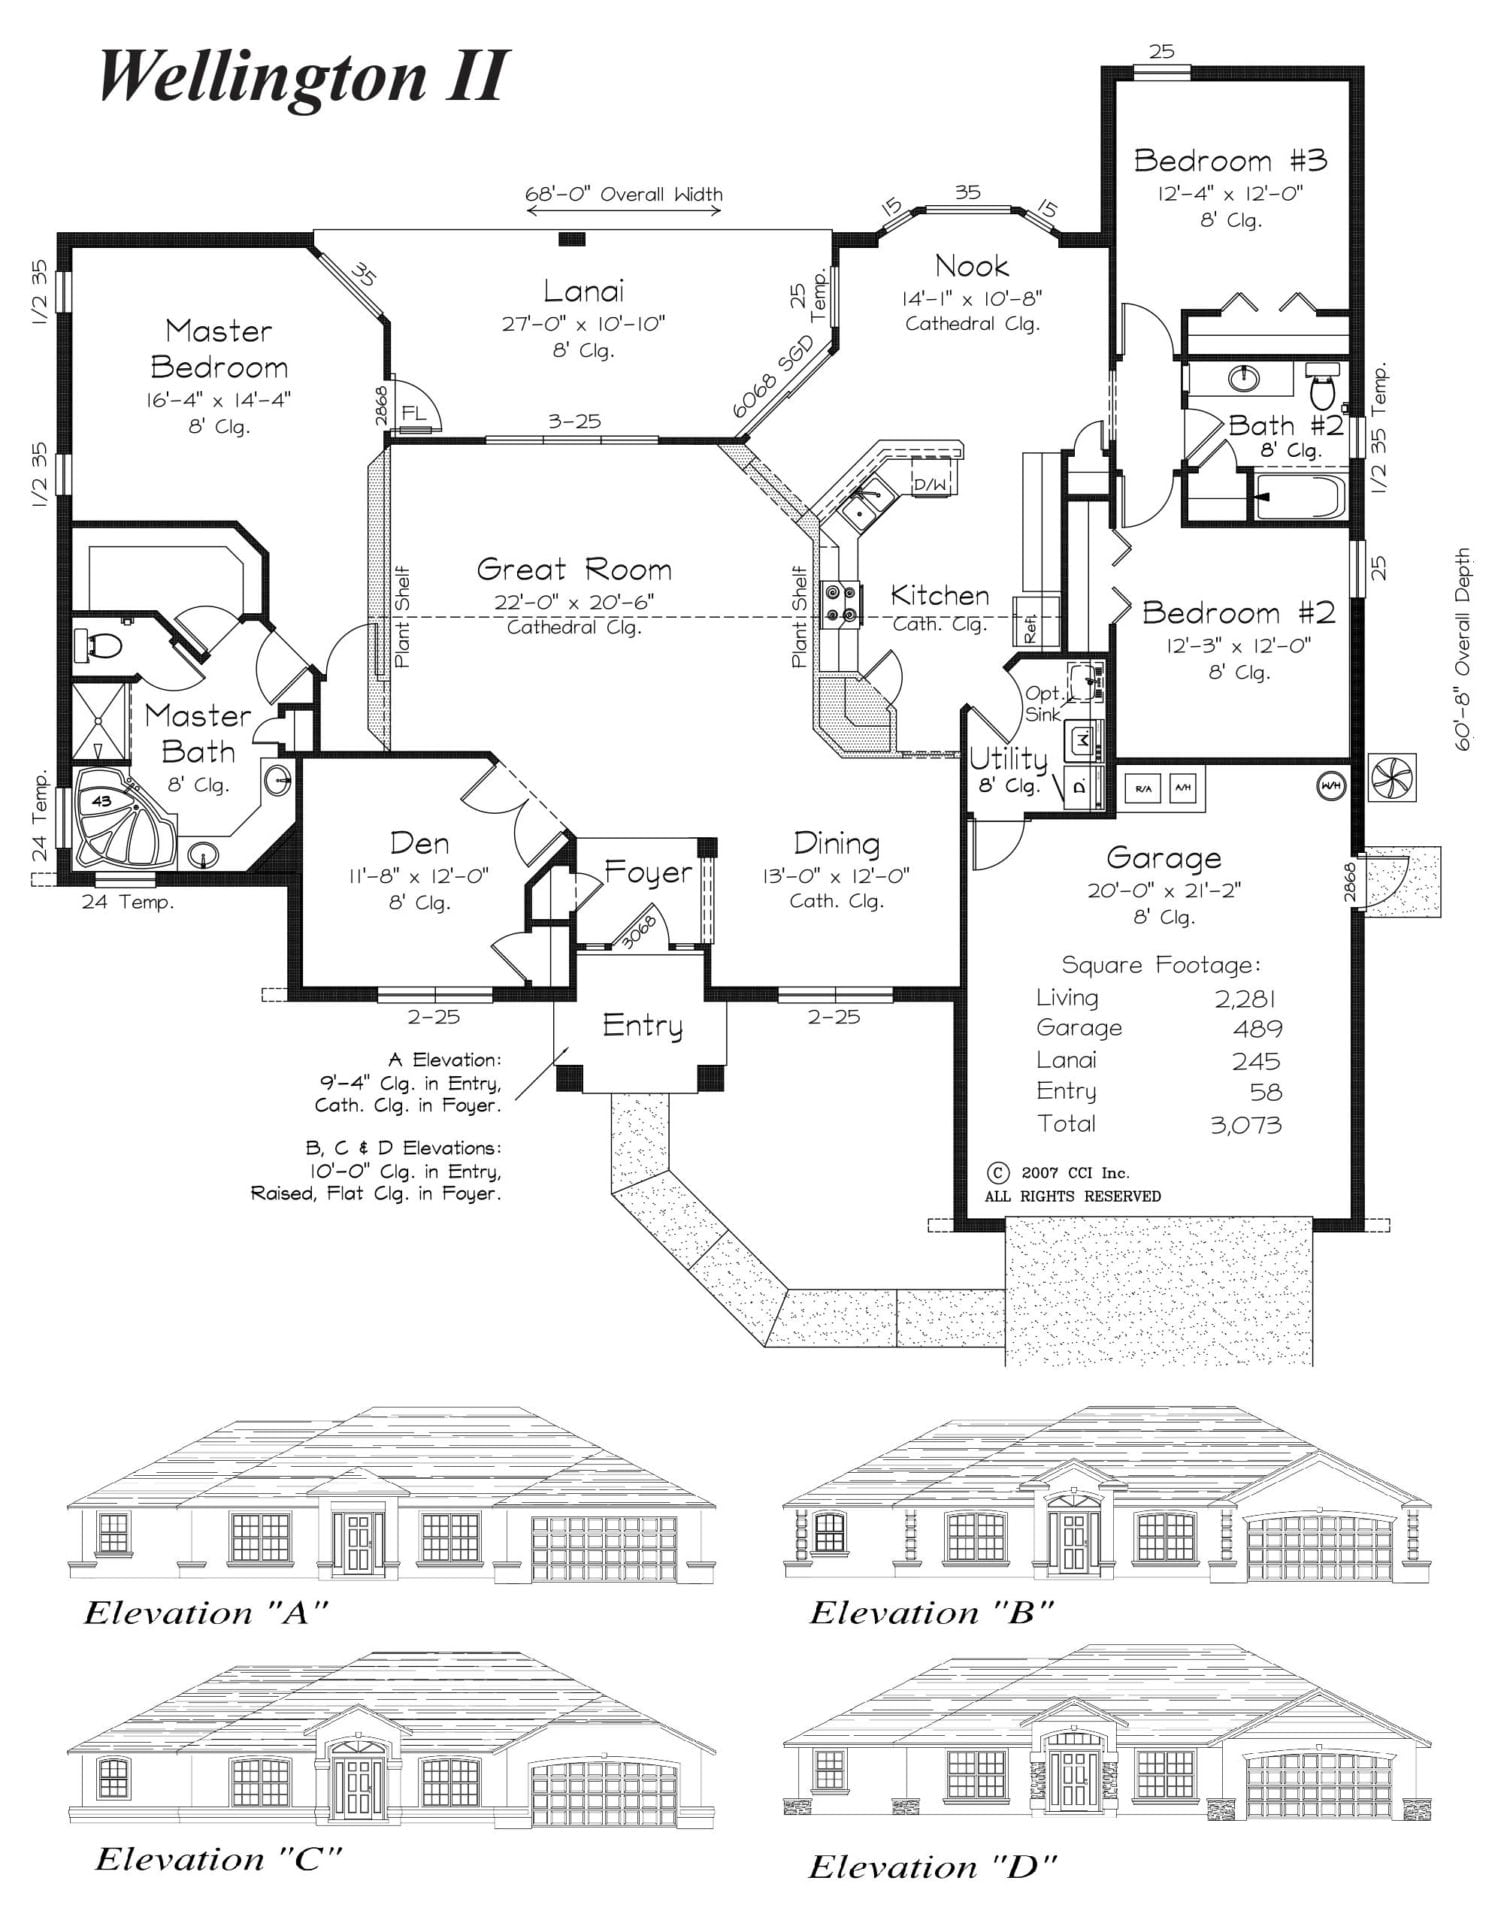 Wellington II Floor Plan - Curington Homes - Ocala Florida Contractor